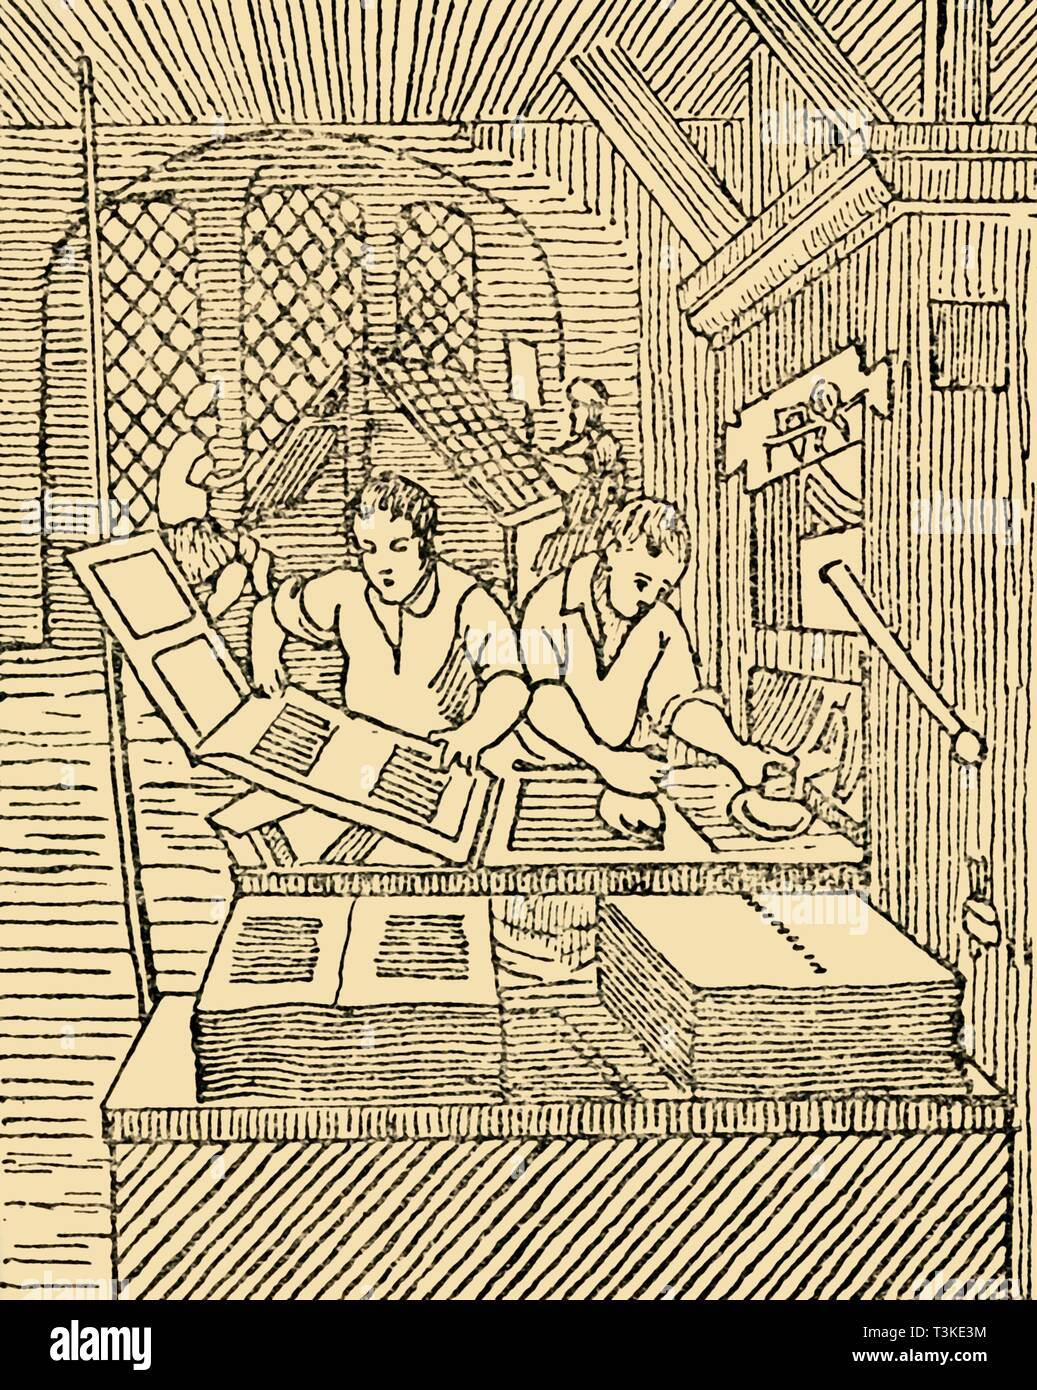 'An Early Printer's Office', c1930. Creator: Unknown. - Stock Image